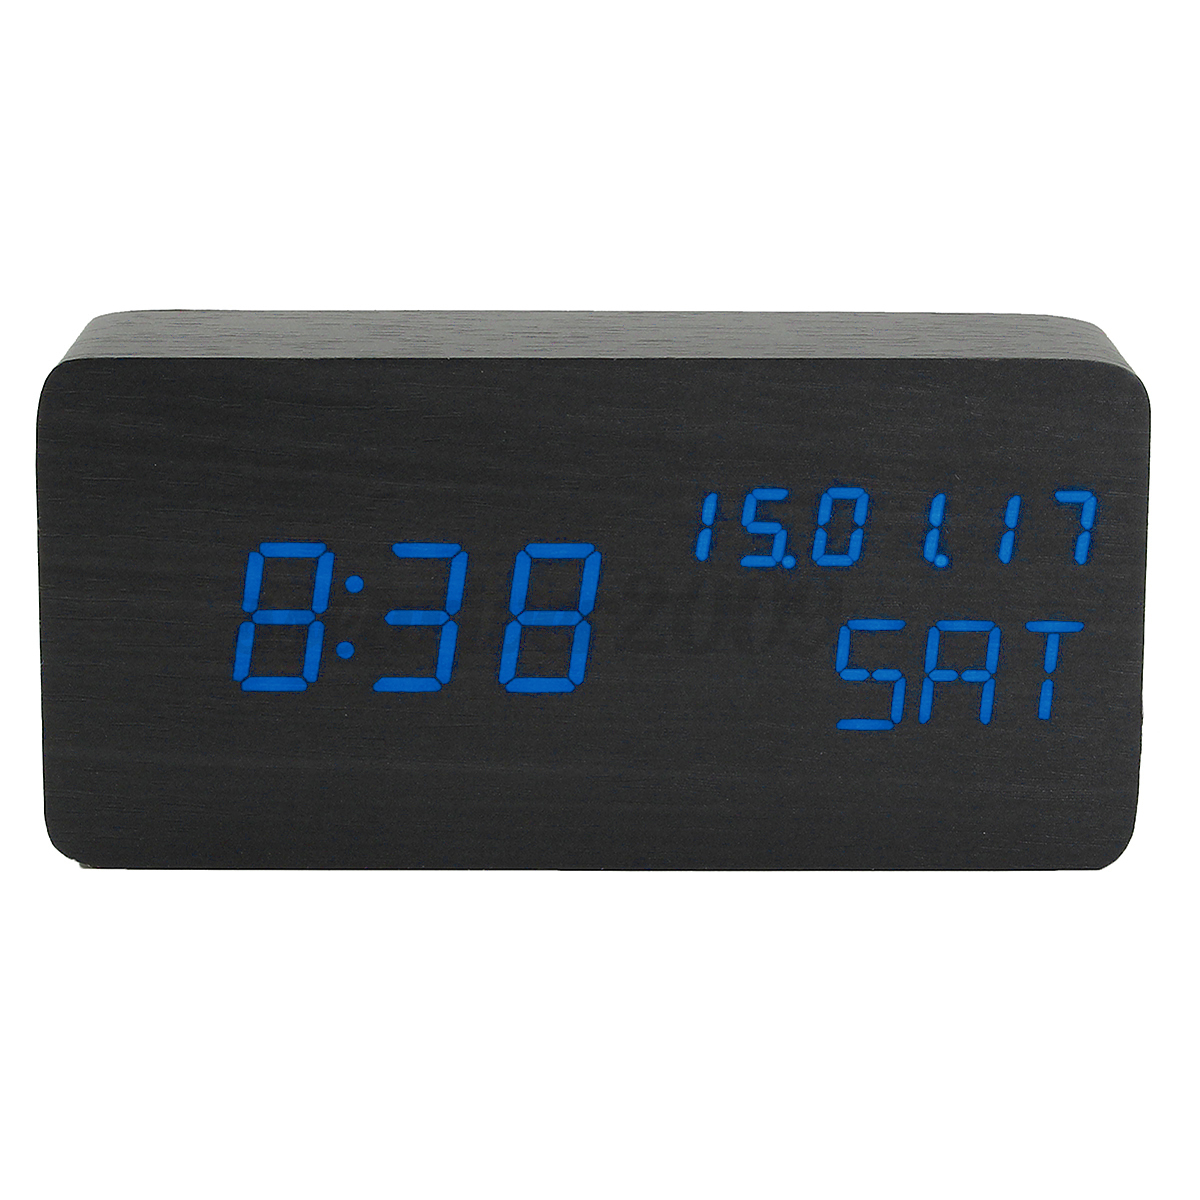 Digital Desk Clock Led Digital Alarm Clock Calendar Thermometer Table Desk